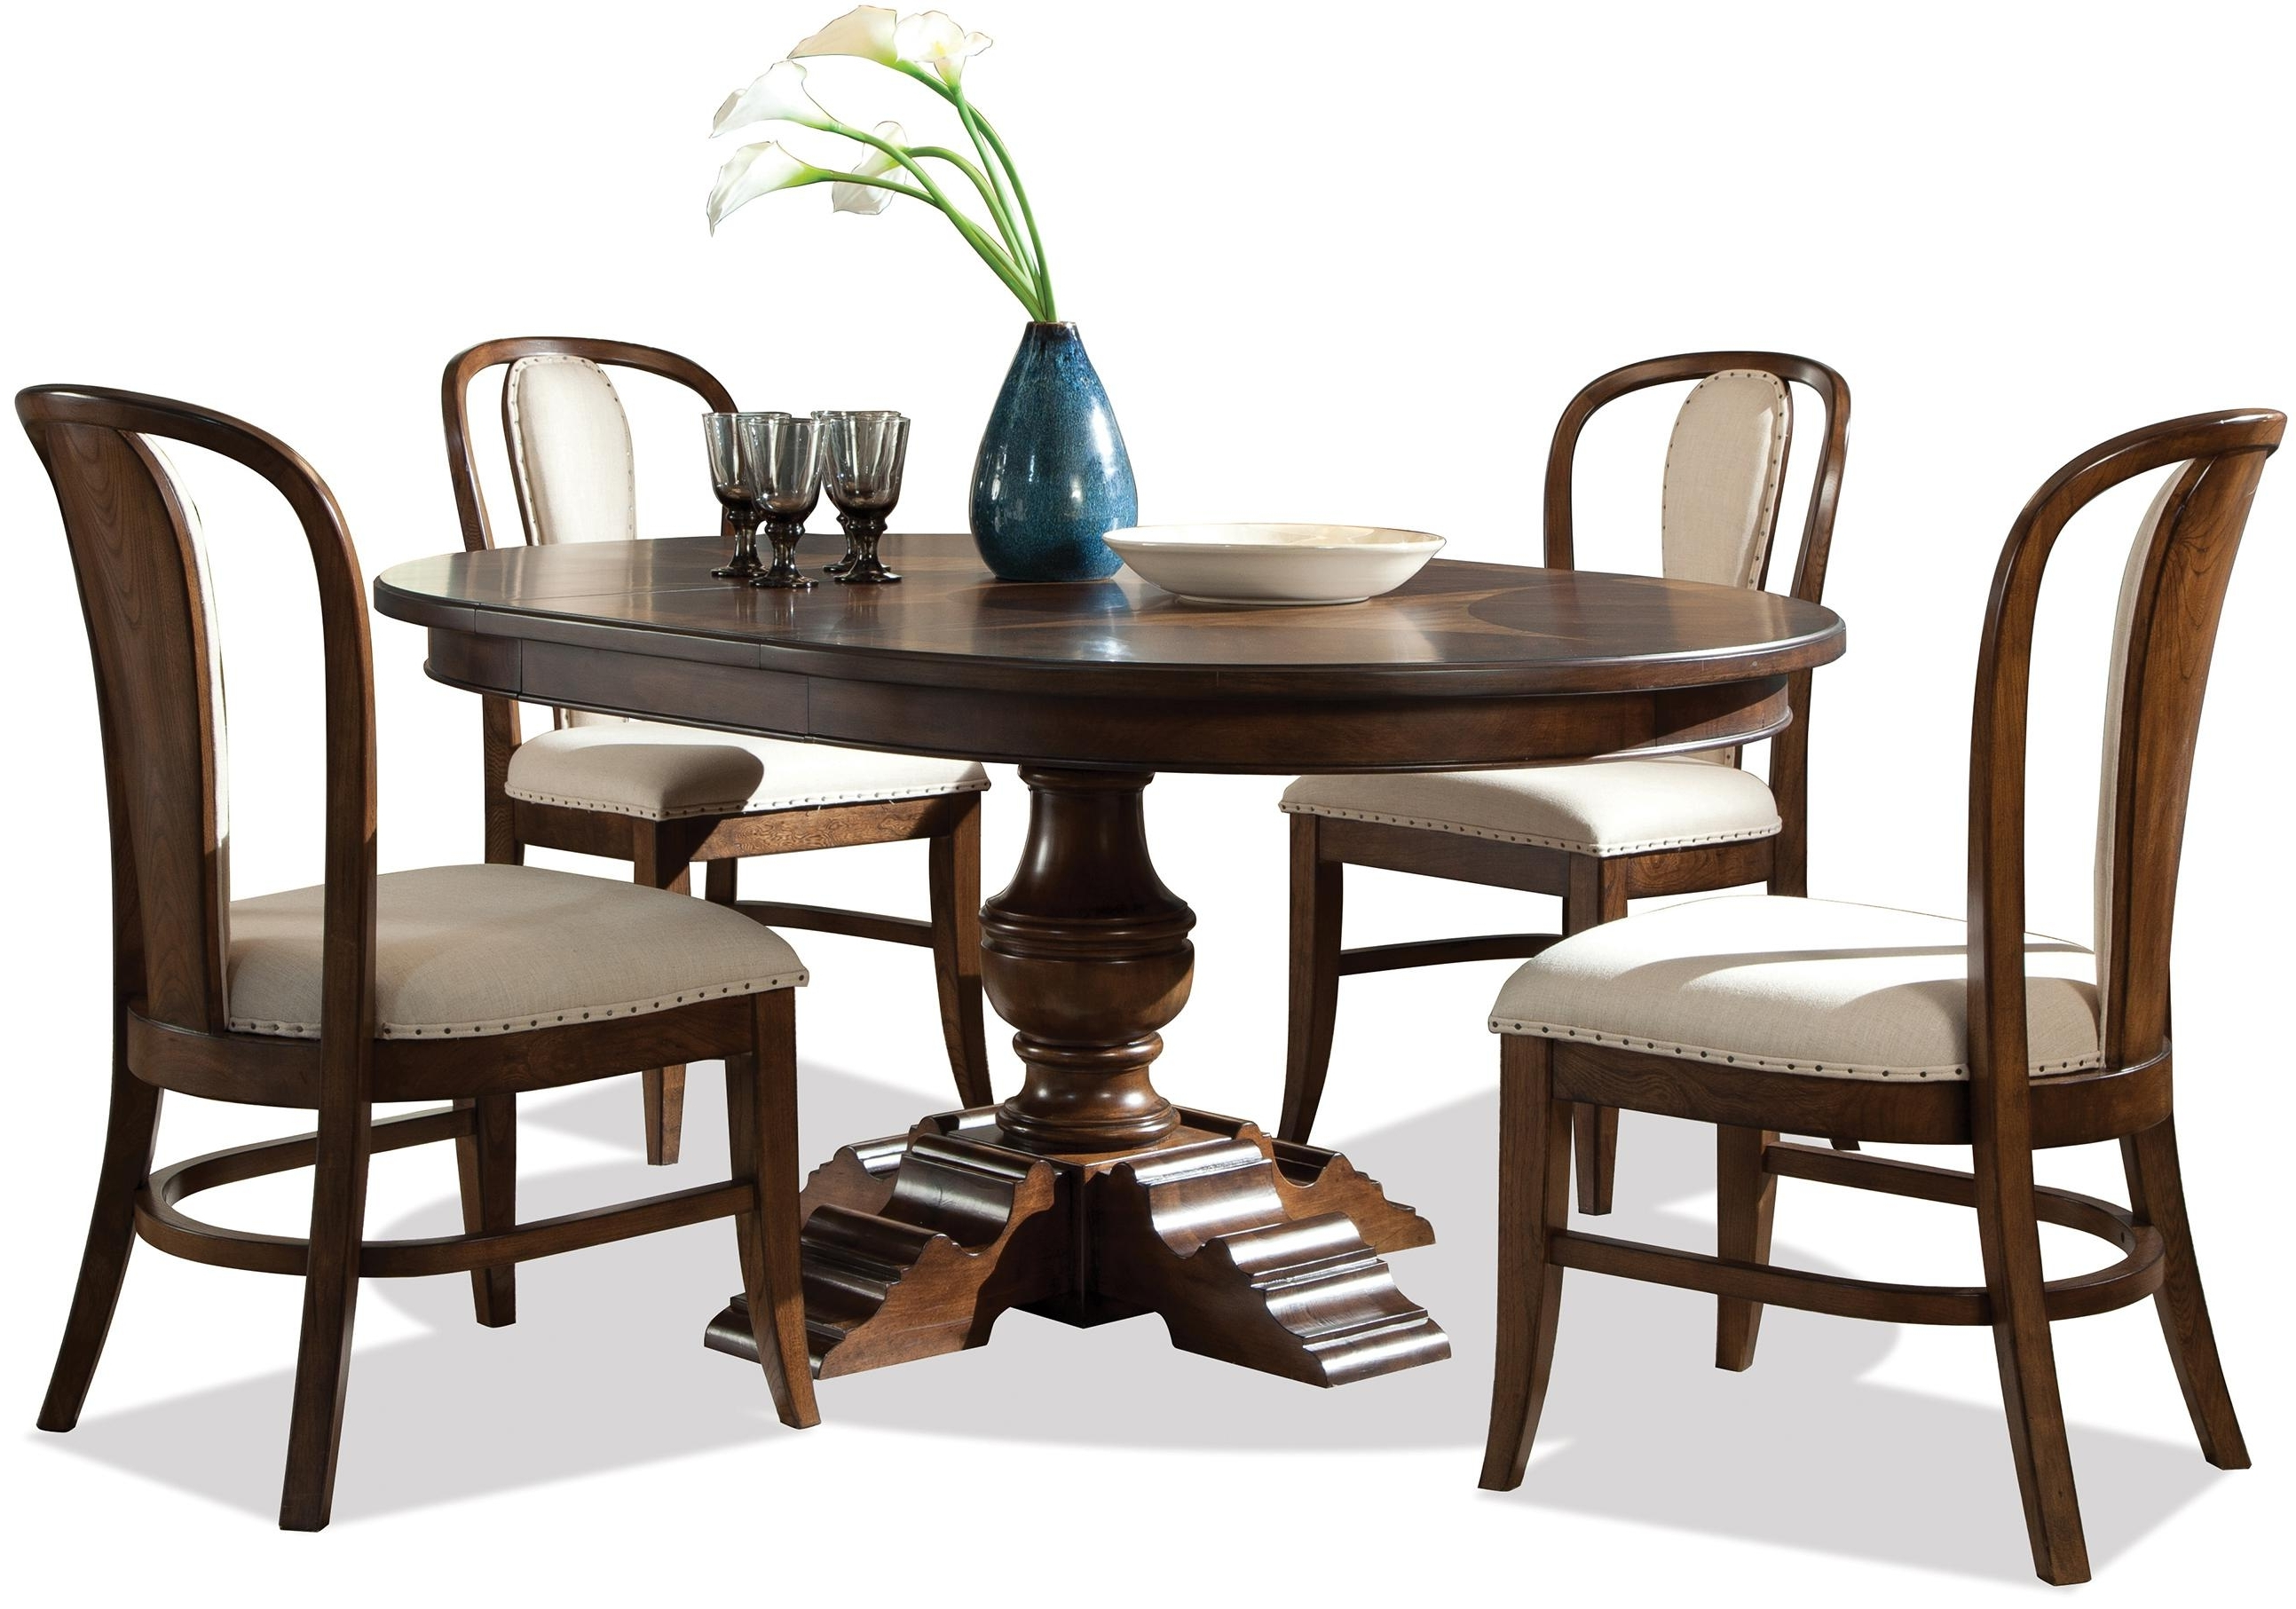 Riverside Furniture Lawrenceville 5 Piece Round Table & Bow Back Within Widely Used Caira Black 5 Piece Round Dining Sets With Diamond Back Side Chairs (View 19 of 25)